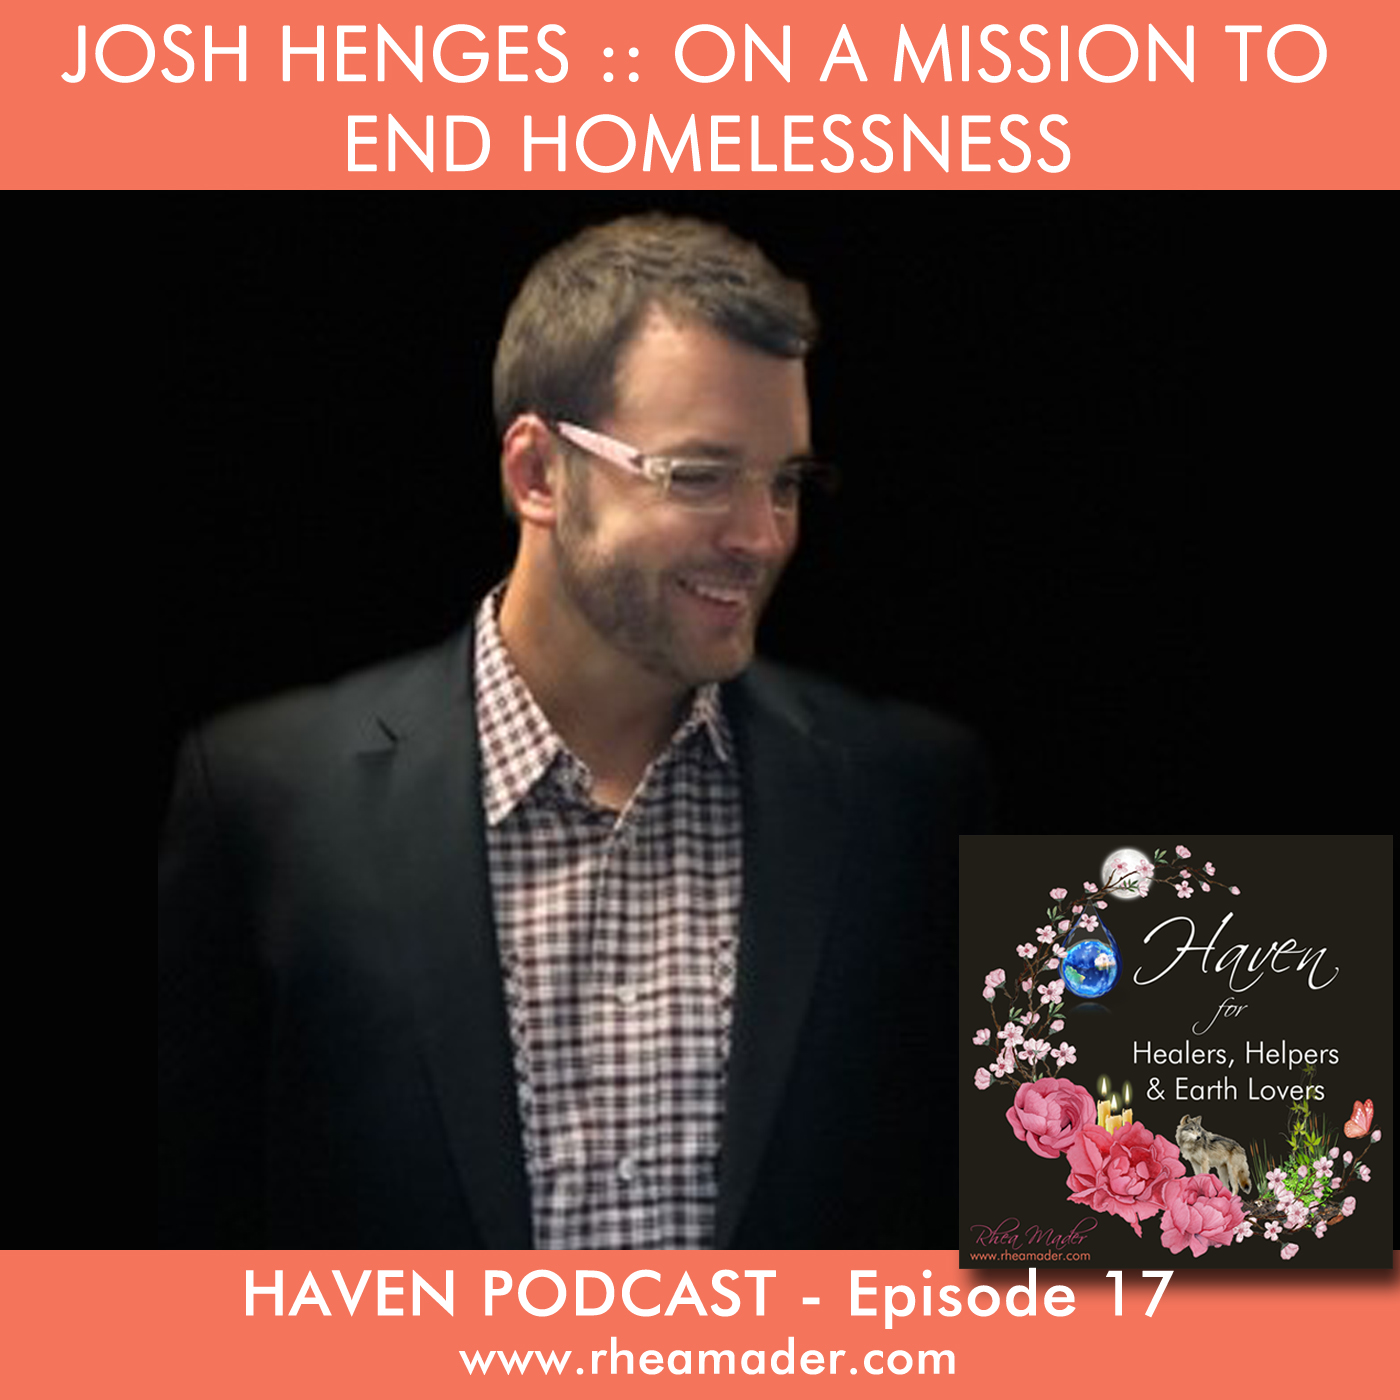 Josh Henges: Homelessness, Veterans & Community